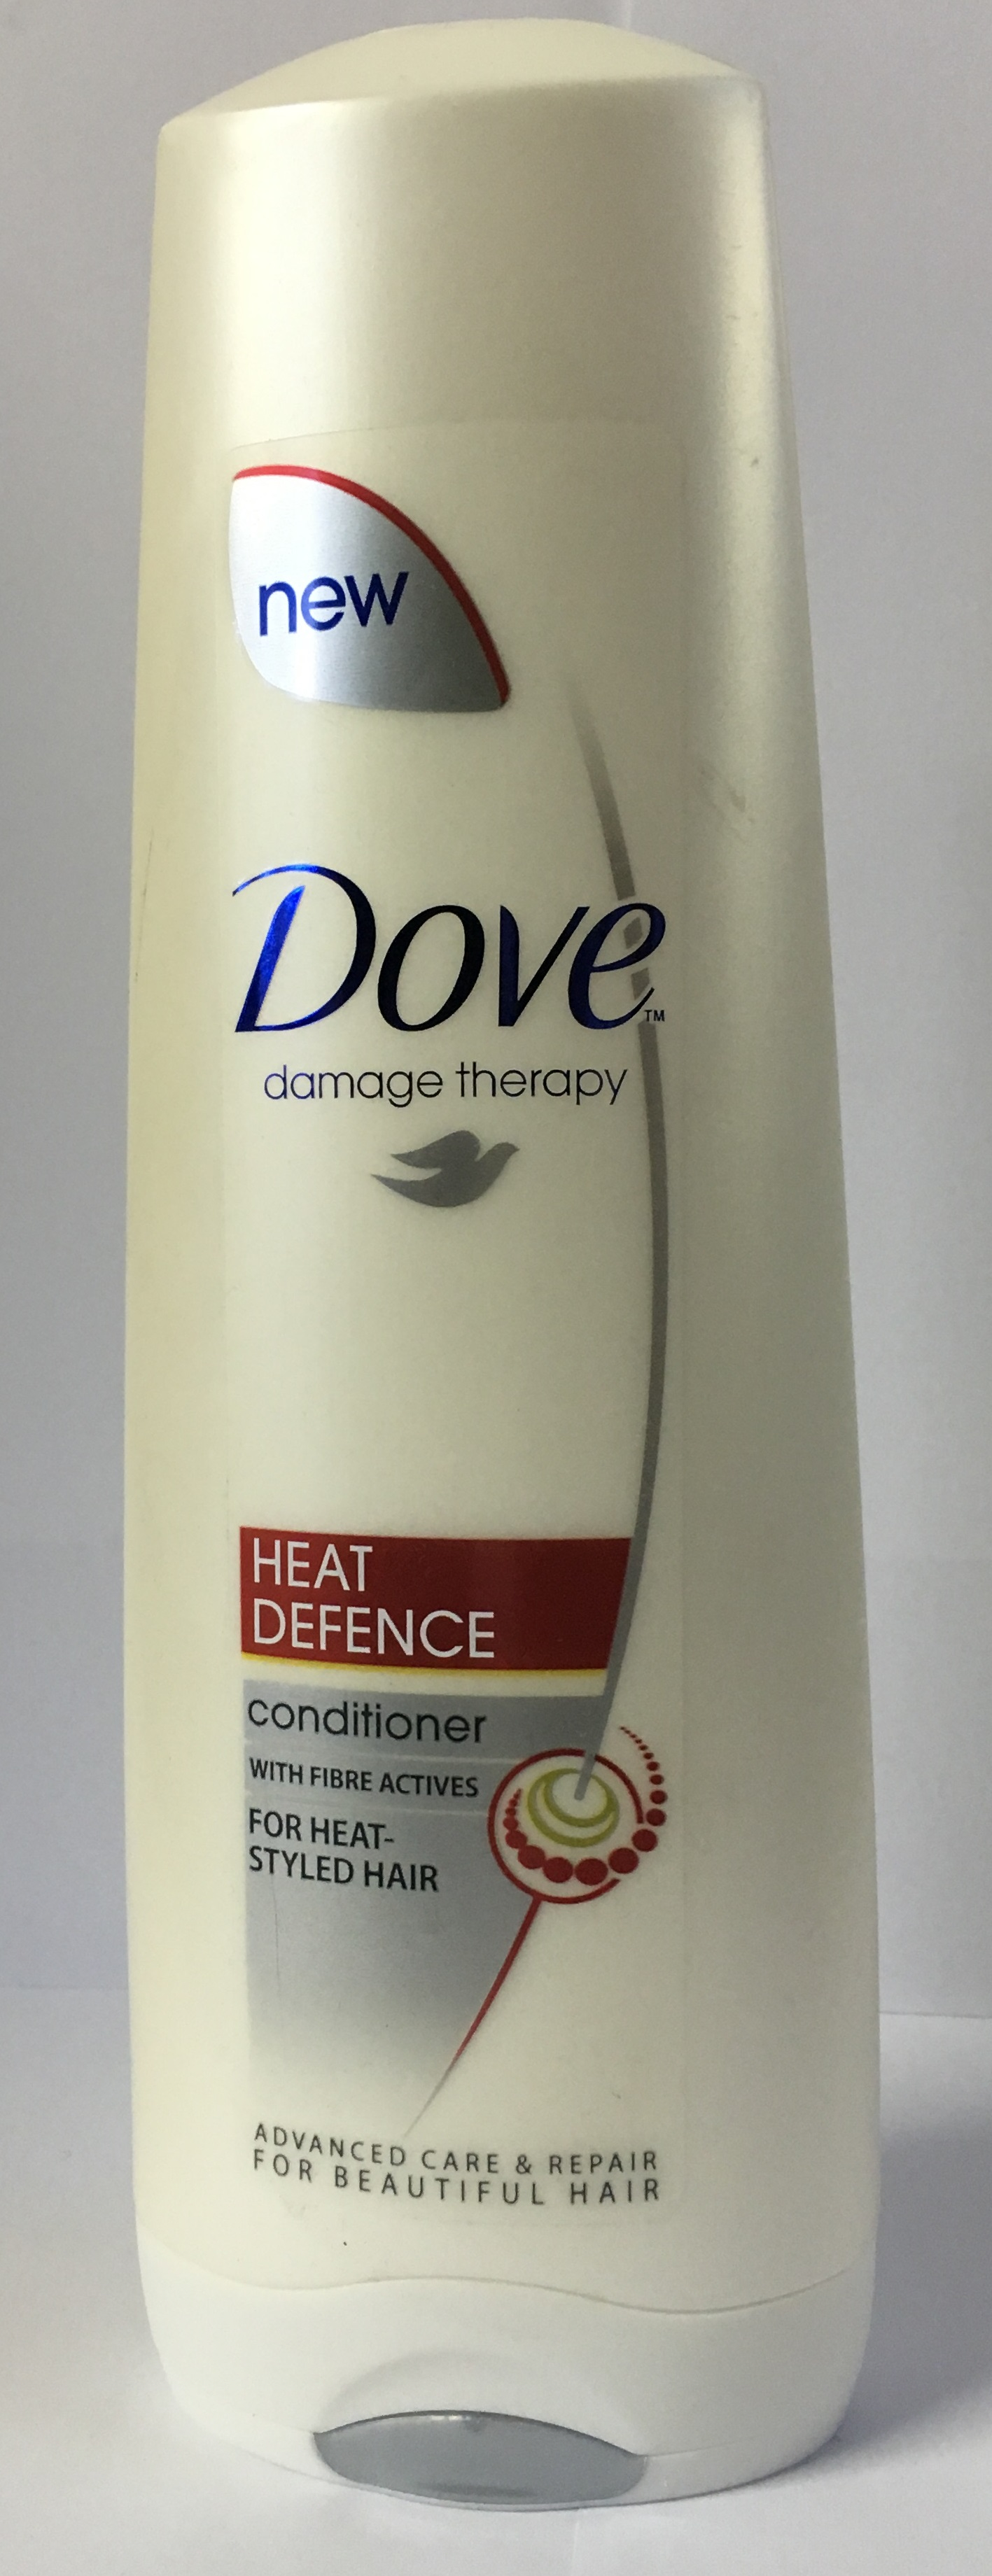 Dove Conditioner Heat Defence